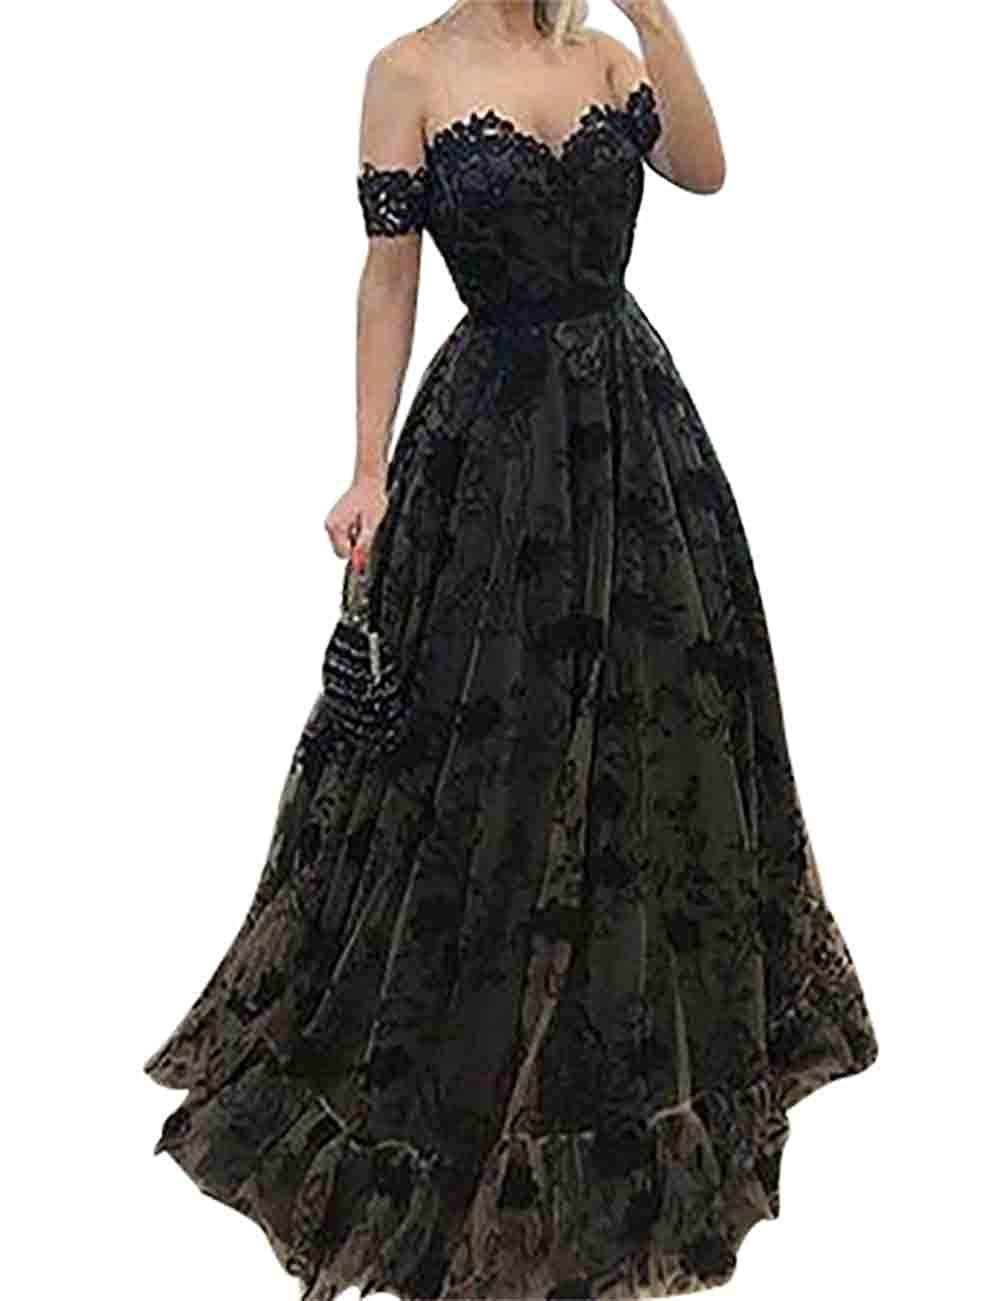 088adc100be Homecoming Dresses Amazon Prime